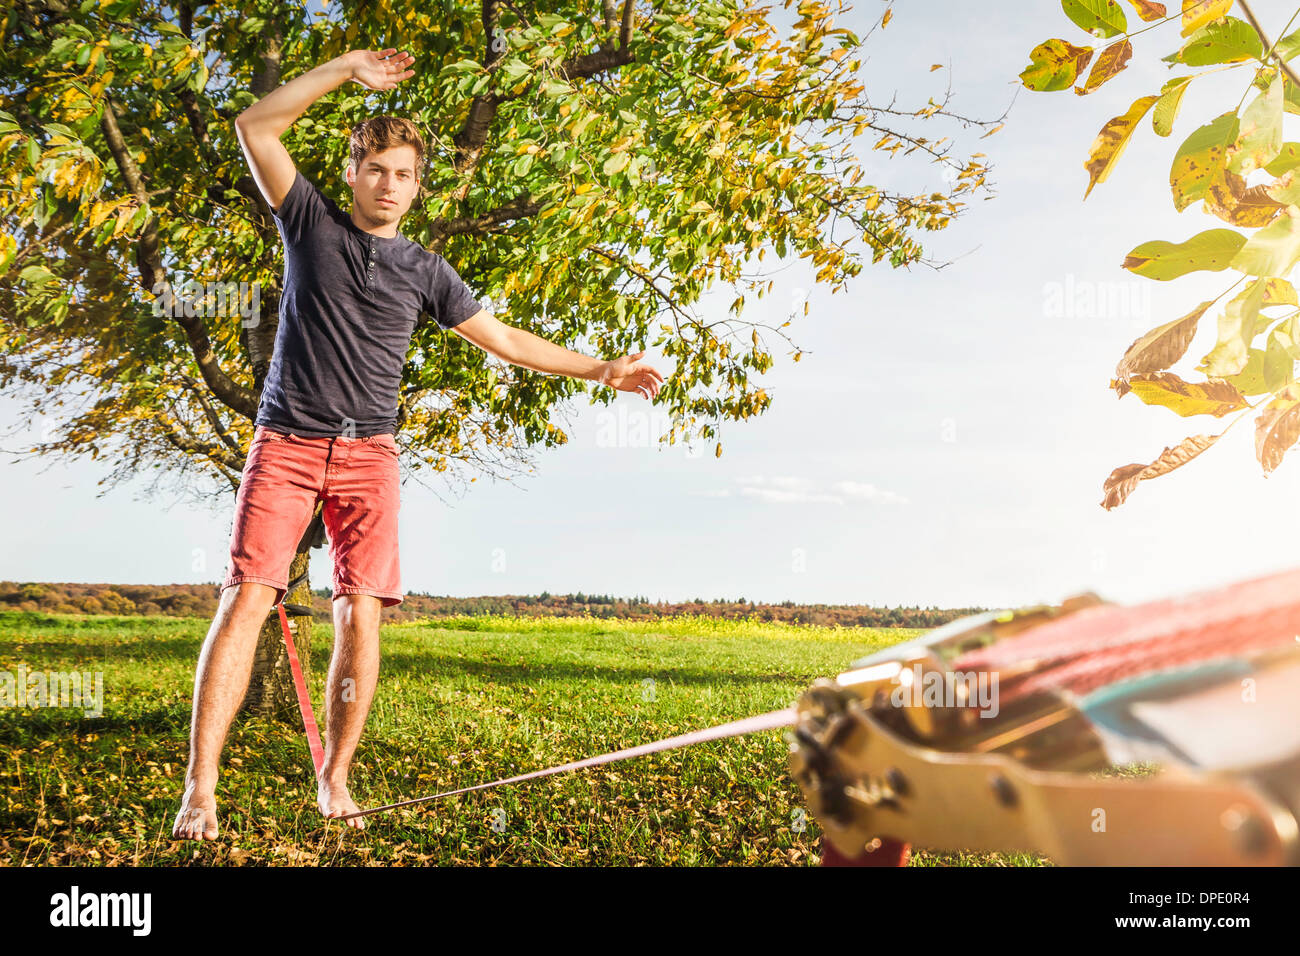 Portrait of young man balanced on slackline - Stock Image